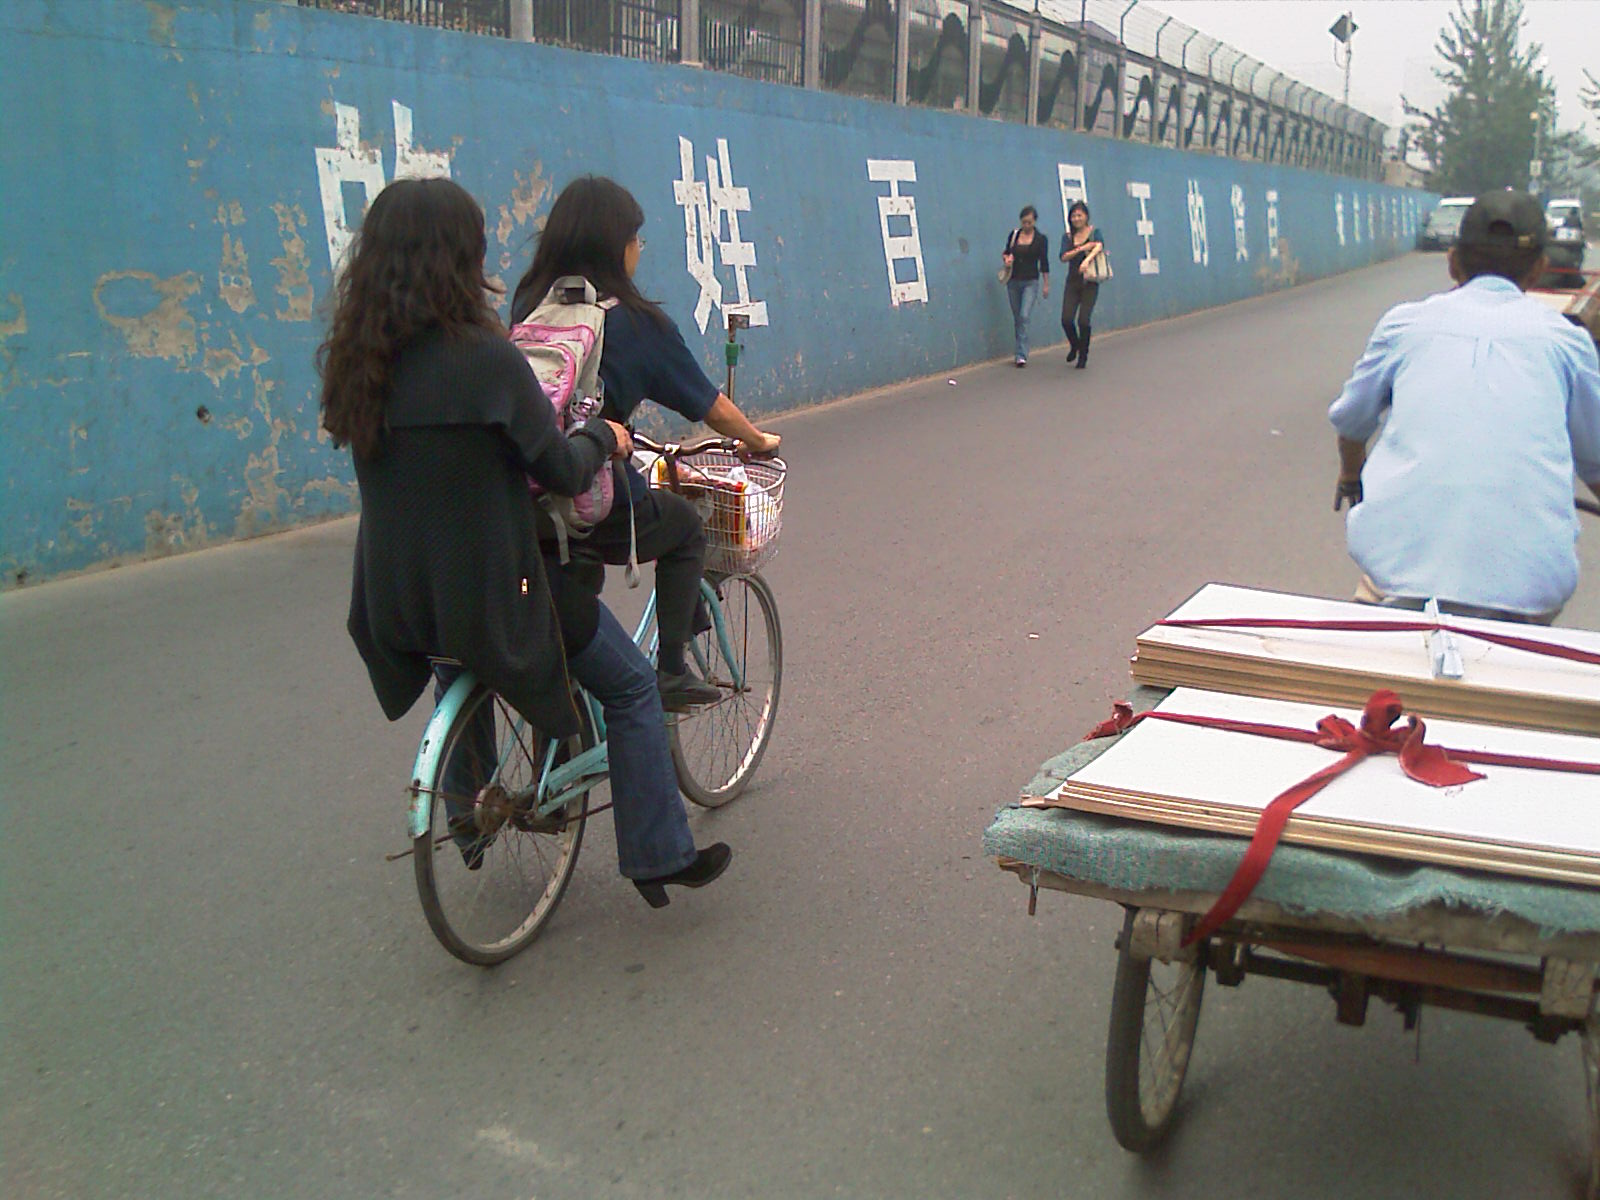 Hitching a ride from my friend Wingee. We shopped at a fruit wholesaler - this is the real China experience, boys and girls.